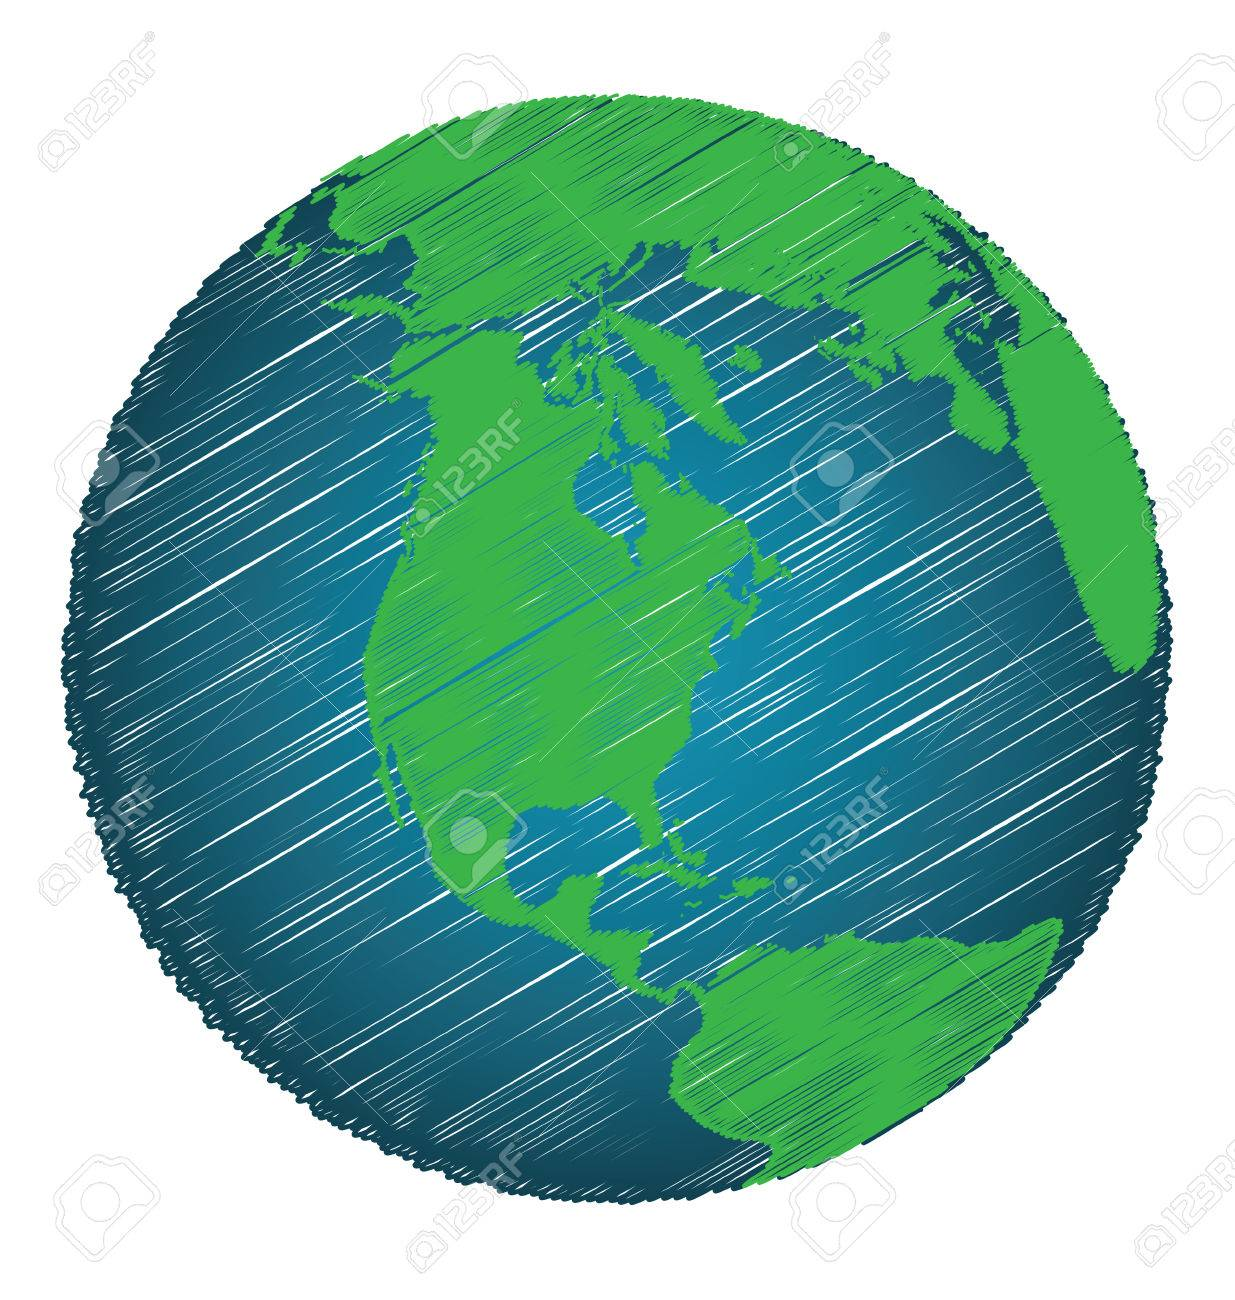 Earth sketch hand draw focus north america continent credit earth sketch hand draw focus north america continent credit world map of nasa stock vector gumiabroncs Images